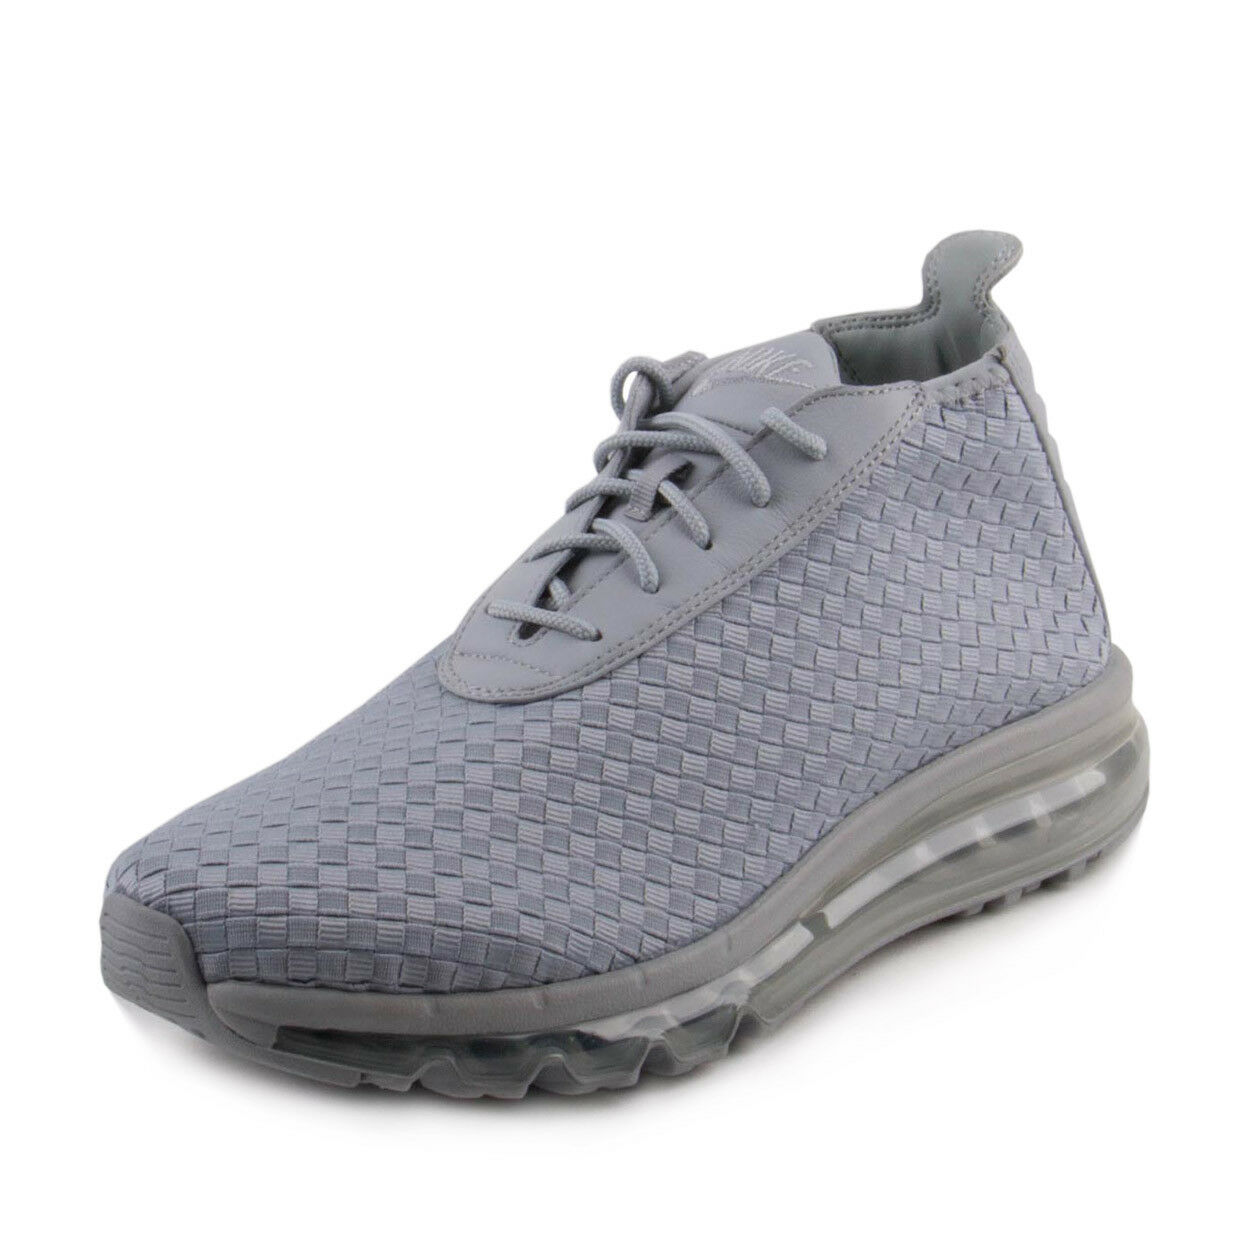 Nike Mens Air Max Woven Boot Grey/White 921854-001